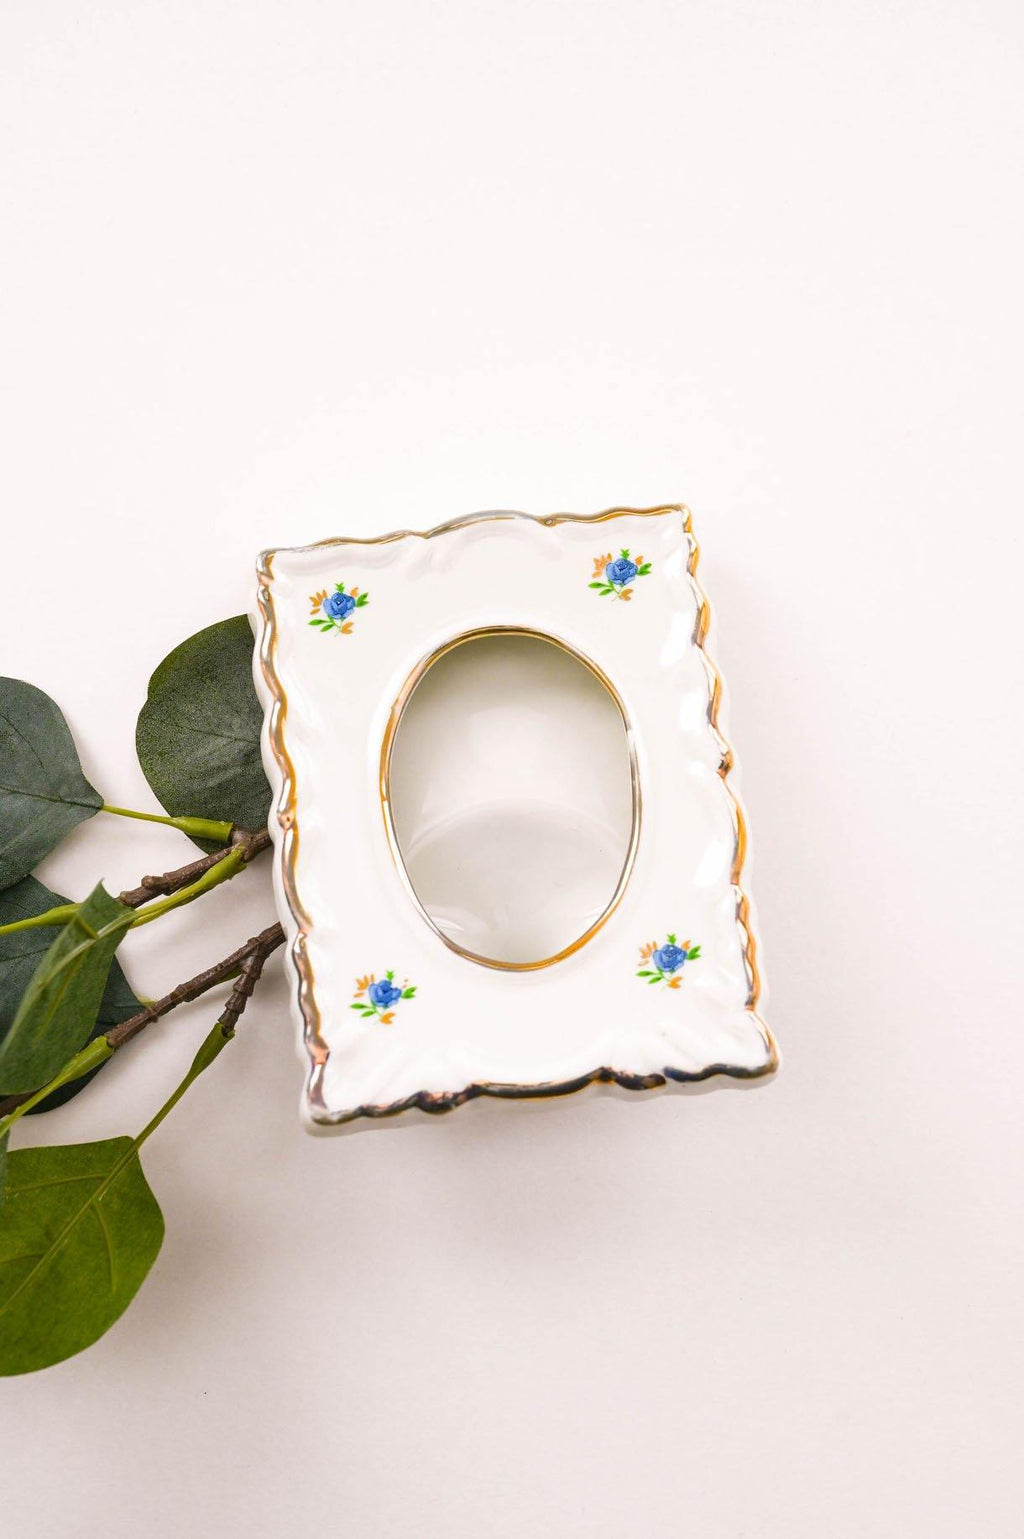 Blue Floral Ceramic Frame